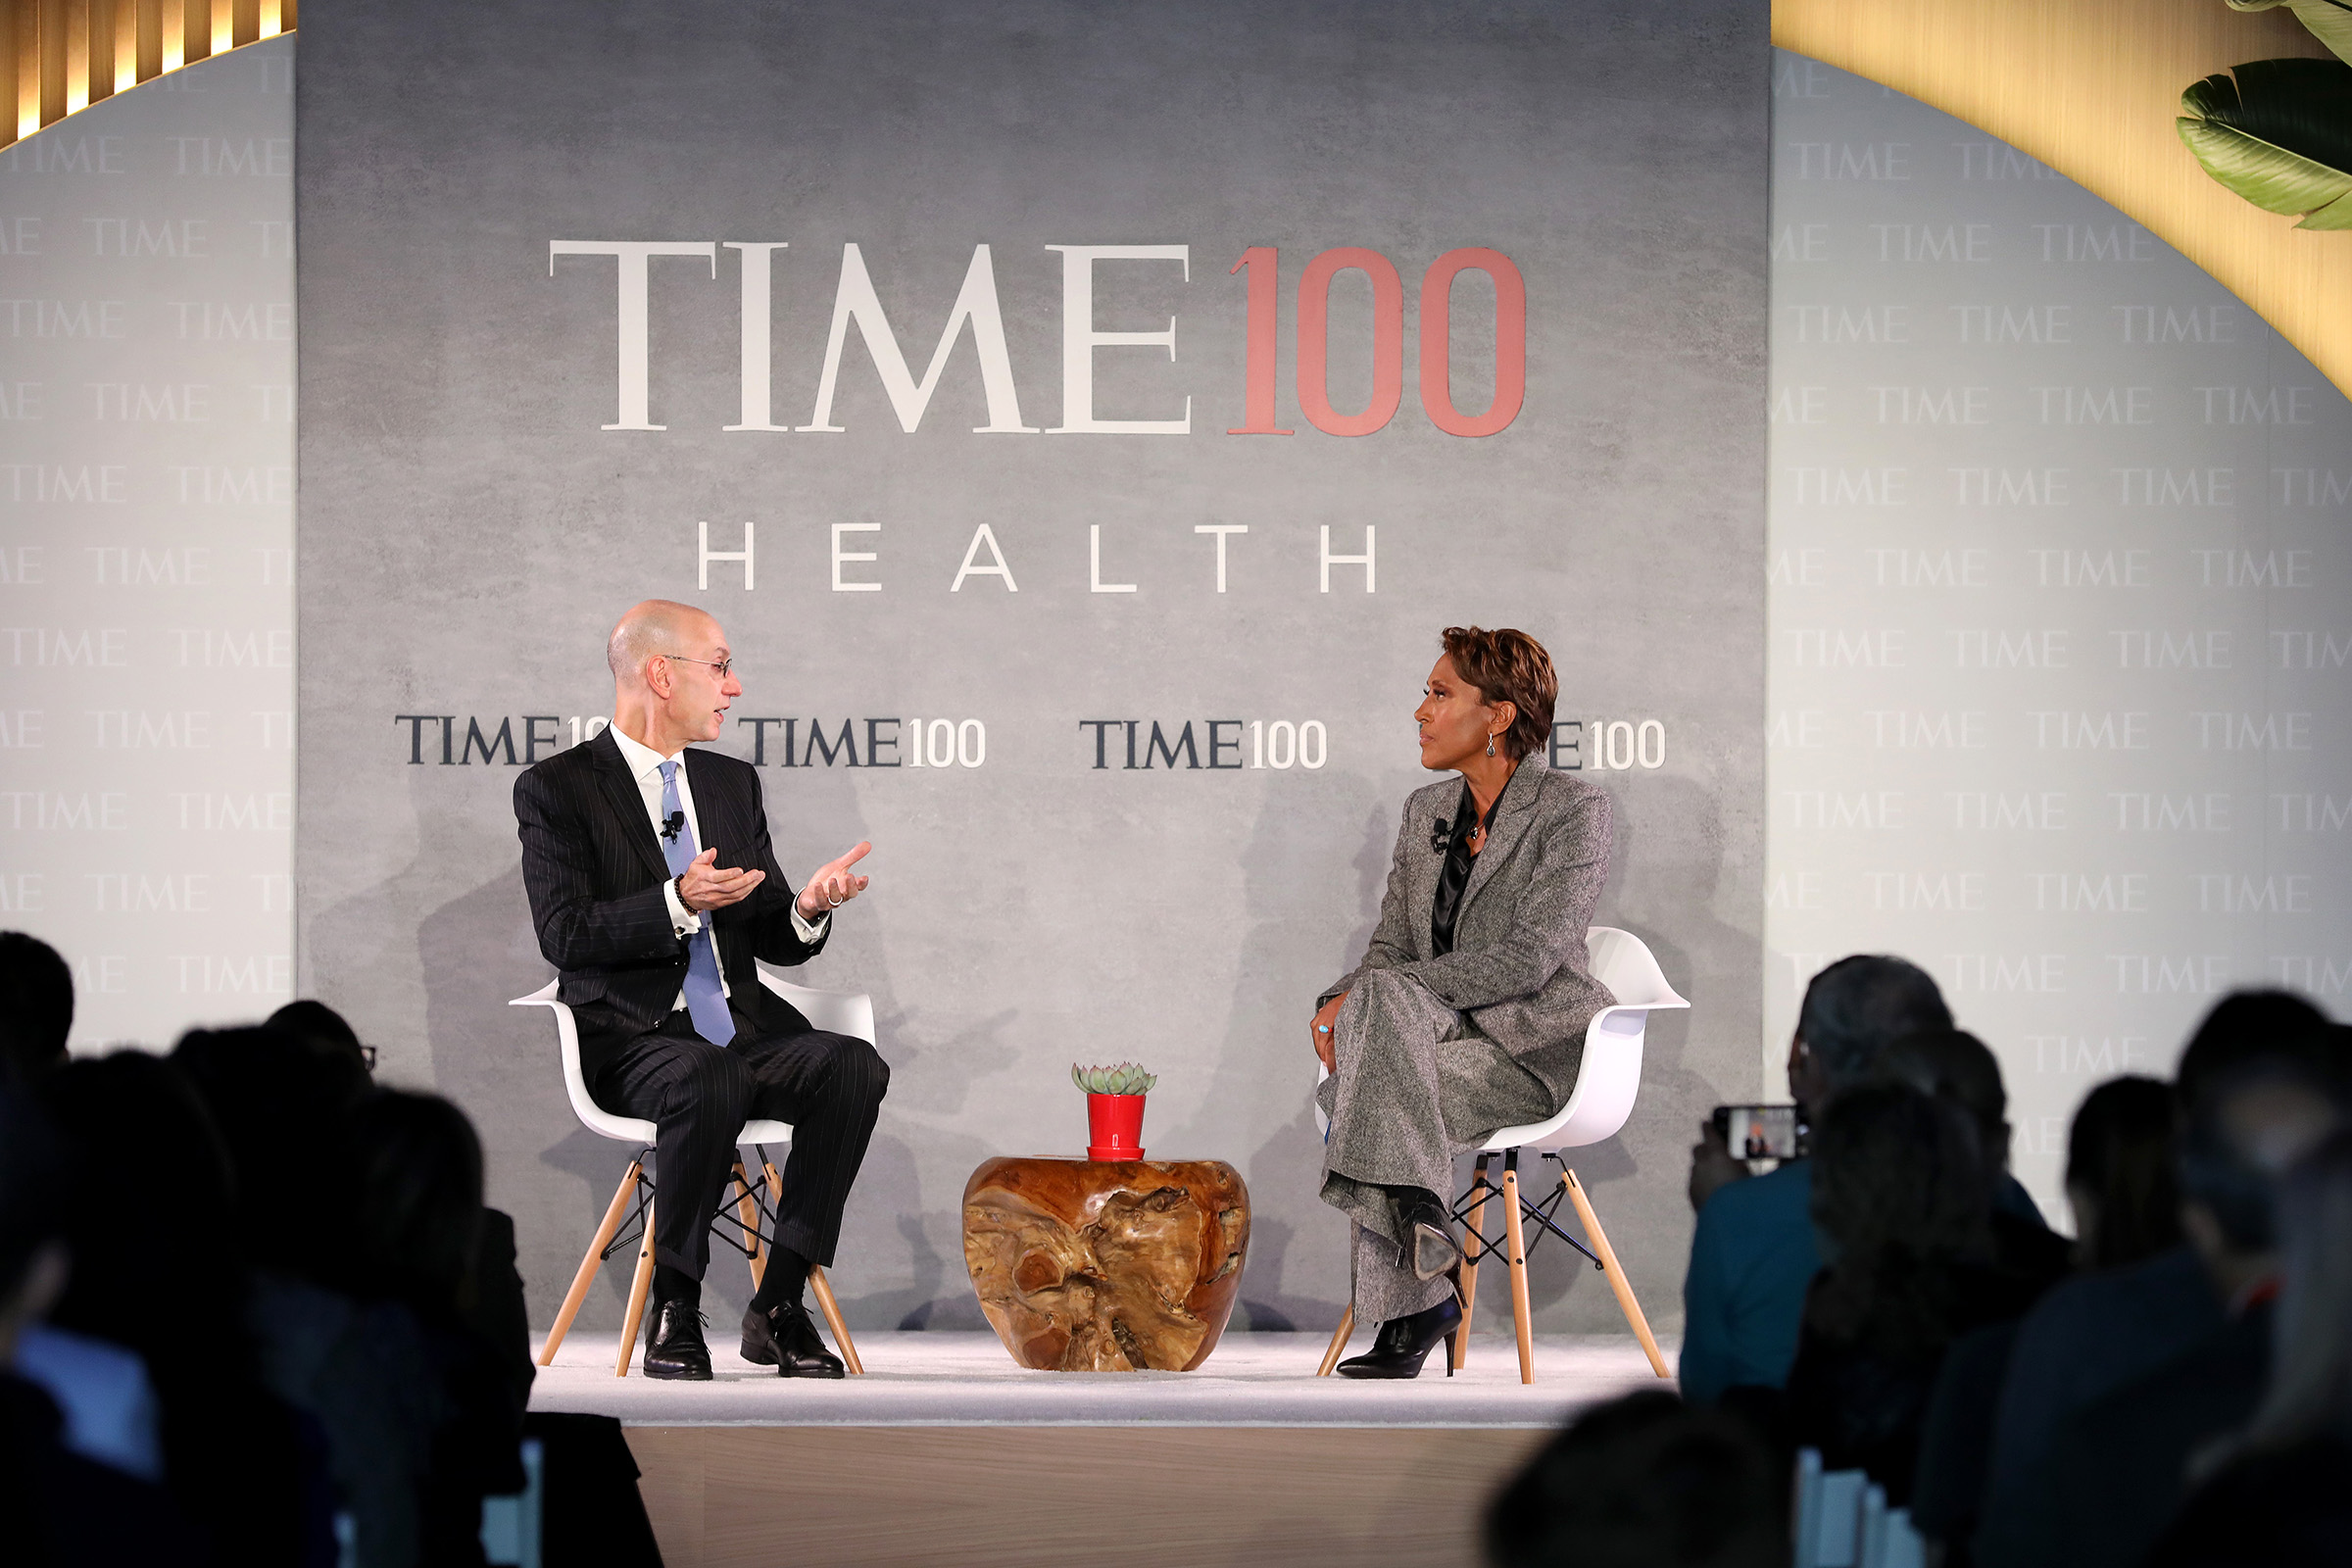 Commissioner of the NBA, Adam Silver (L), speaks with news broadcaster, Robin Roberts, onstage during the TIME 100 Health Summit at Pier 17 in New York City on Oct. 17, 2019.